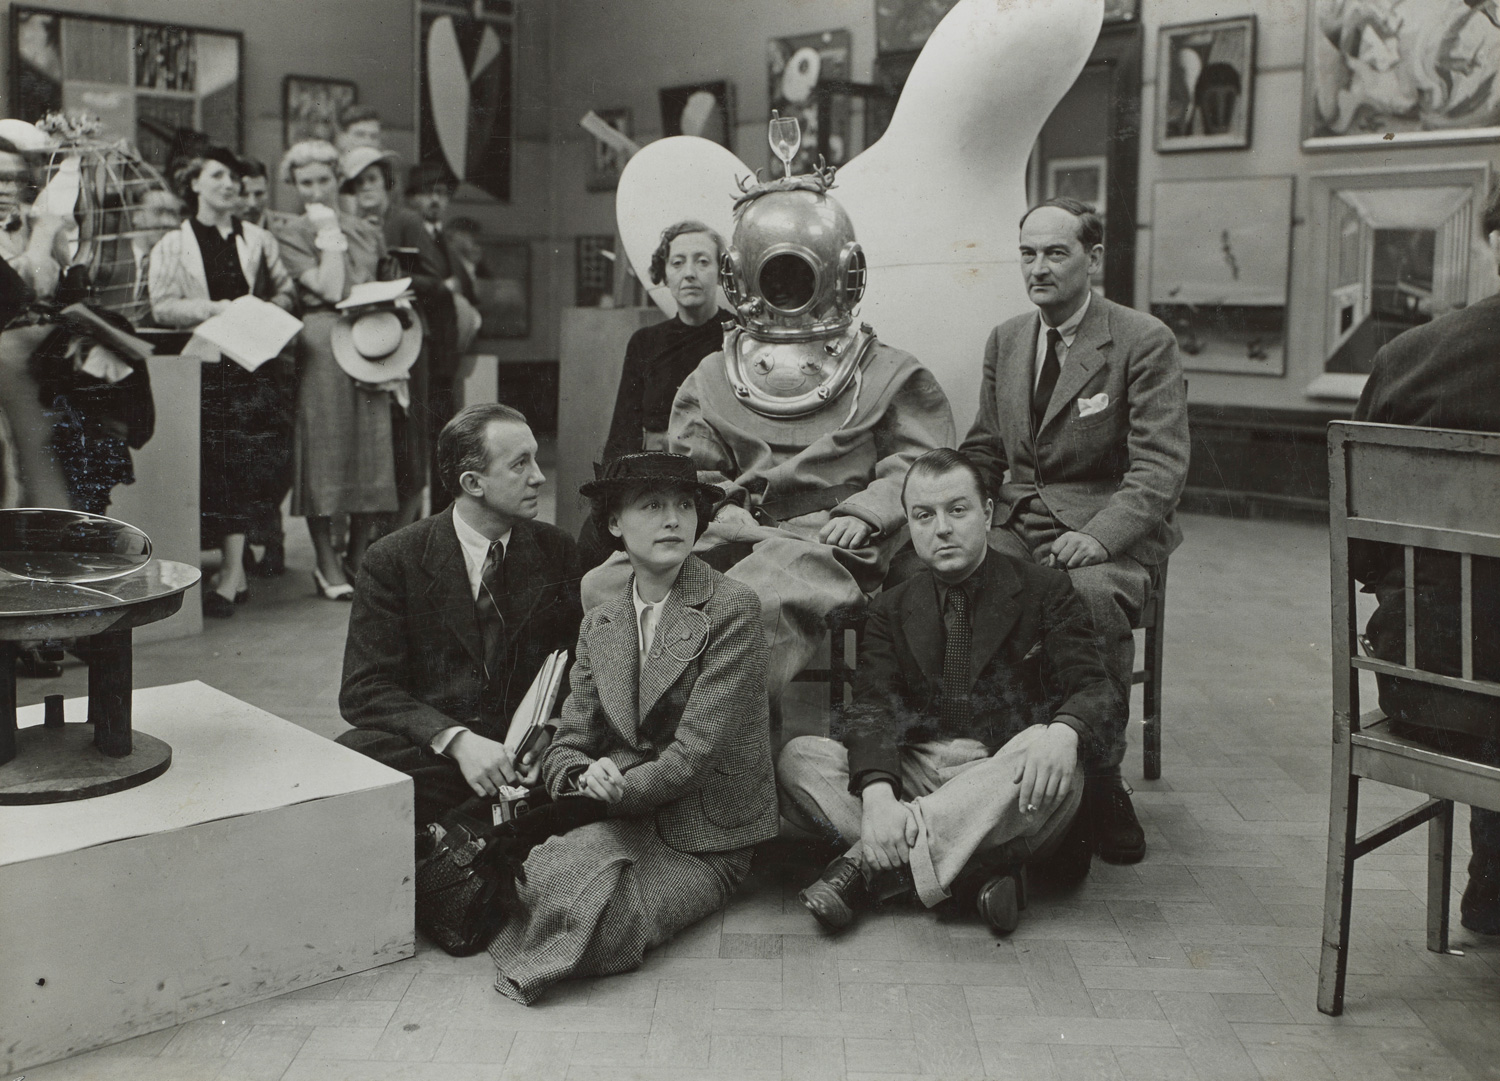 Photograph of Salvador Dali in a deep sea diving suit seated in a group with other Surrealists at the 1936 International Surrelist Exhibitio